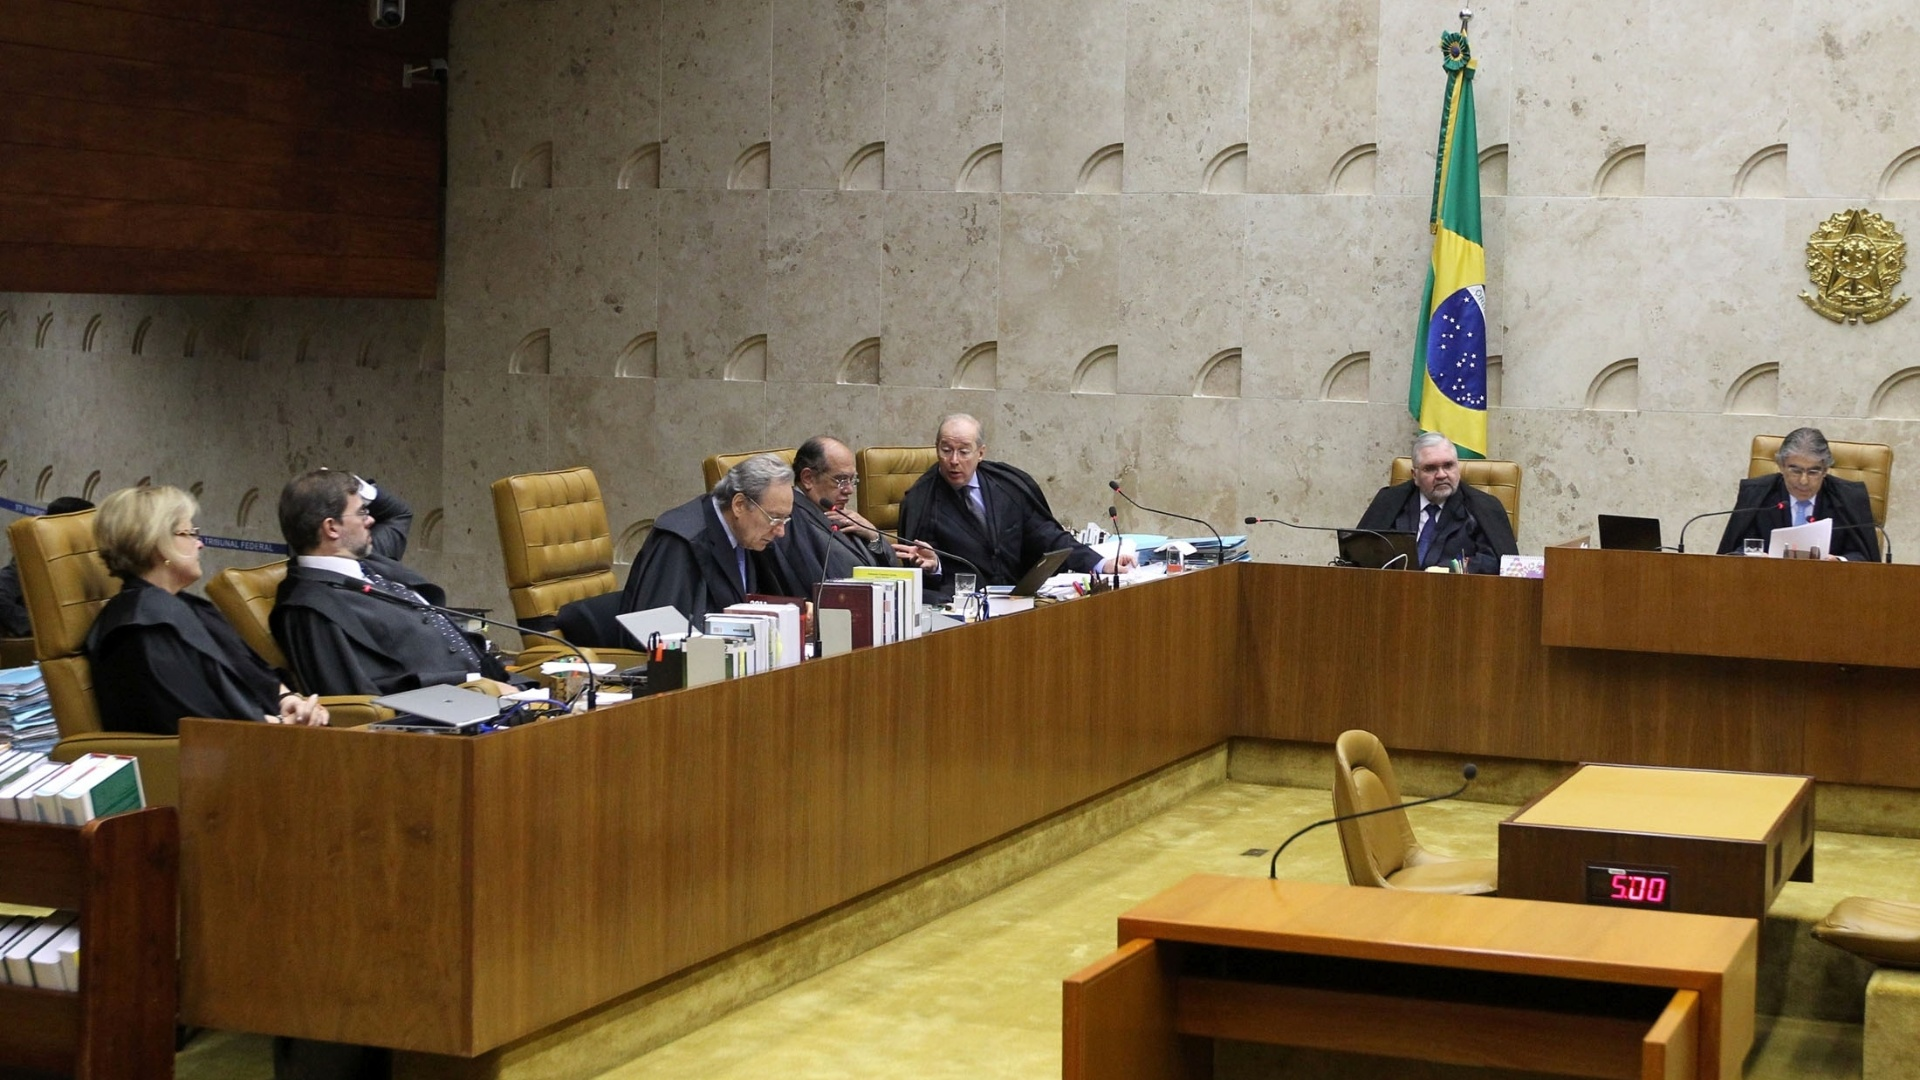 1.out.2012 - Ministros debatem em sesso do julgamento do mensalo